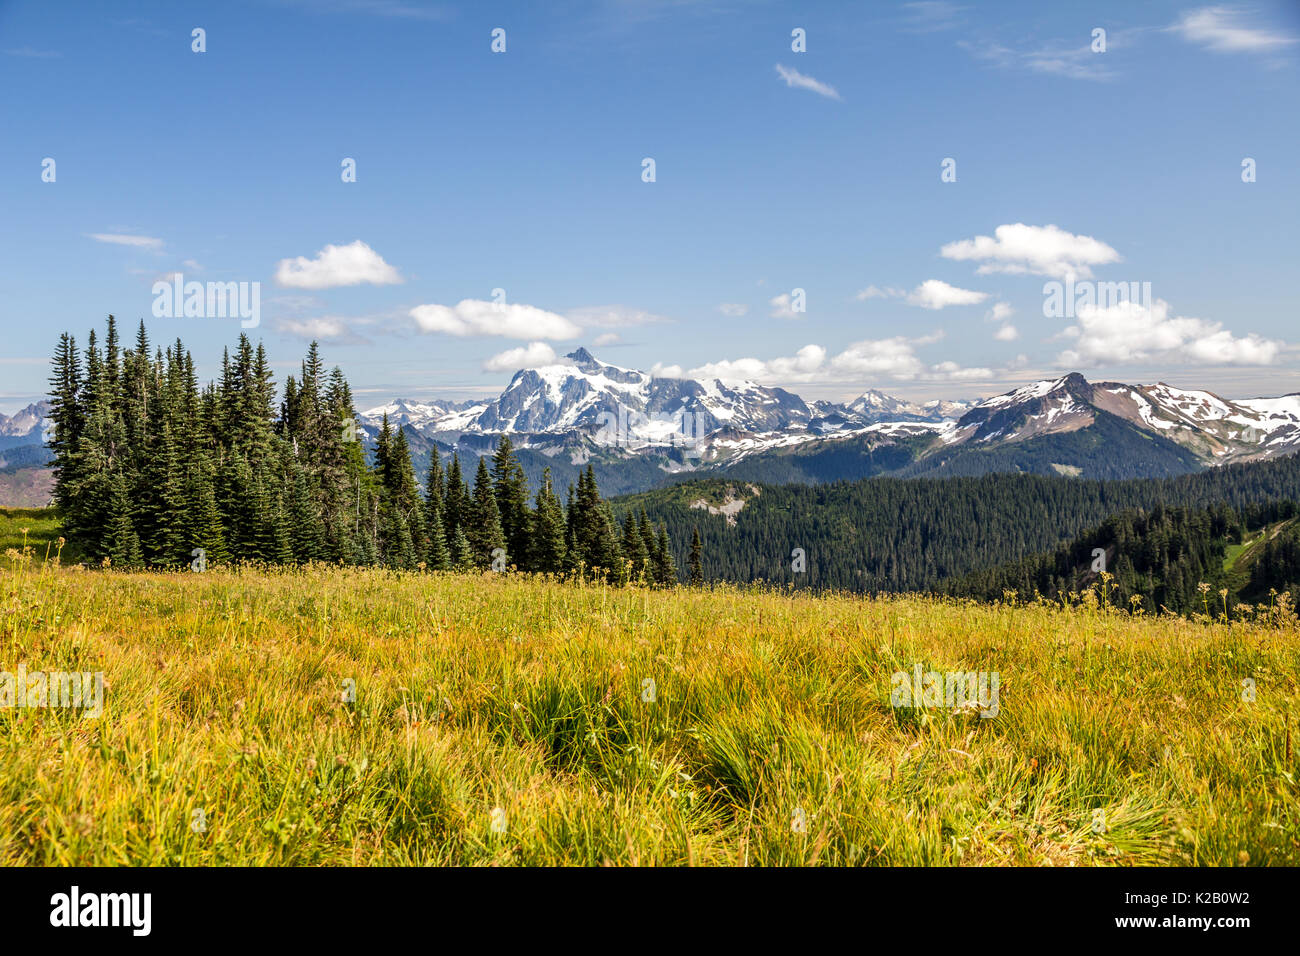 View of Mt Baker in the North Cascades of Washington State - just south of Vancouver, BC - seen from the Skyline Divide hiking trail. - Stock Image